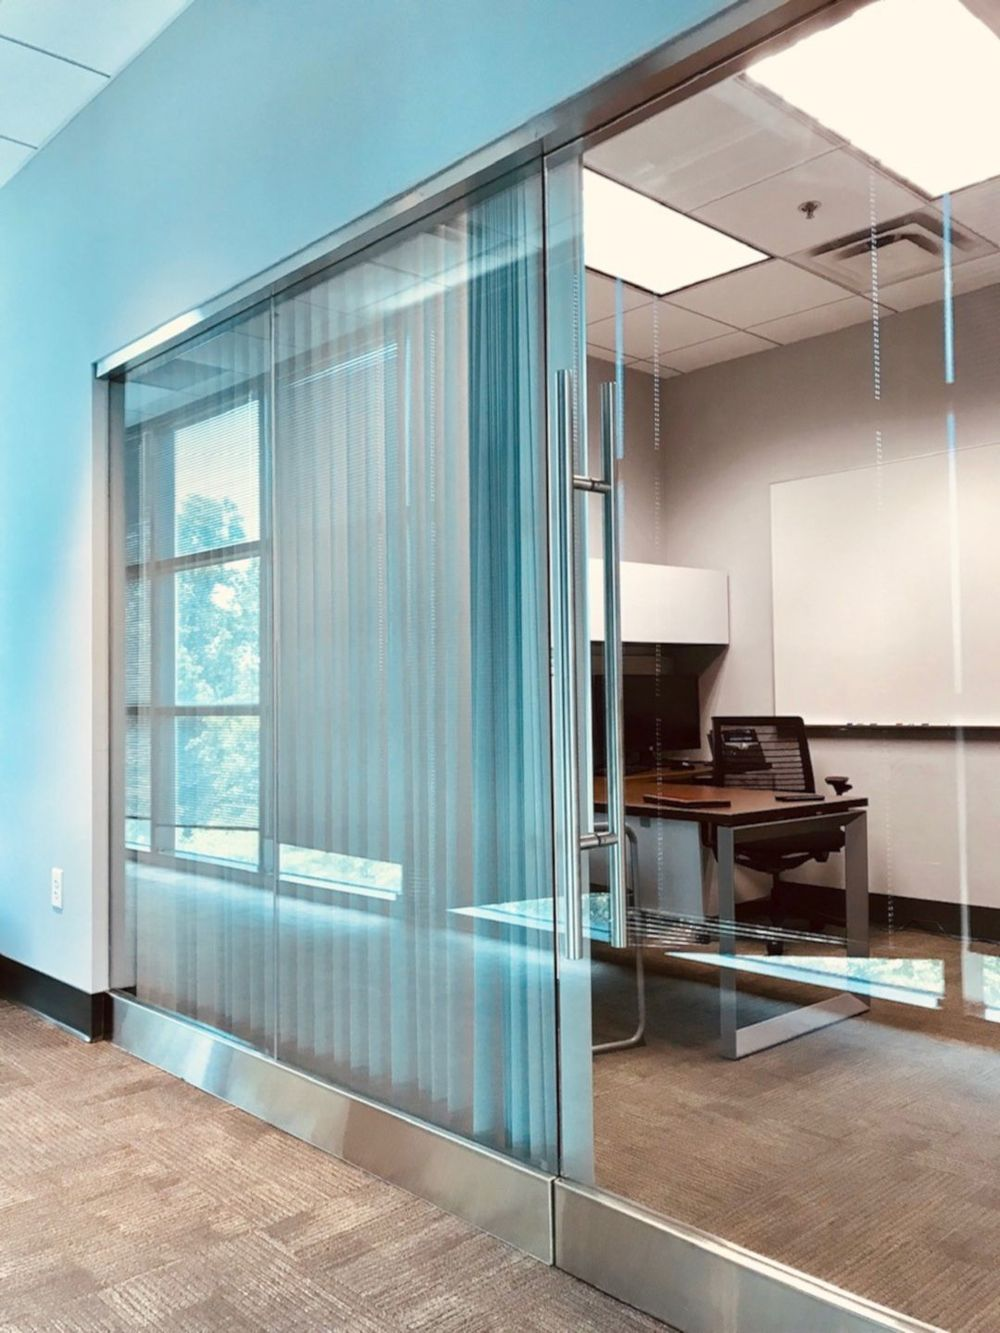 An office room with a glass wall and door. It also has carpeted flooring and tiled ceiling.